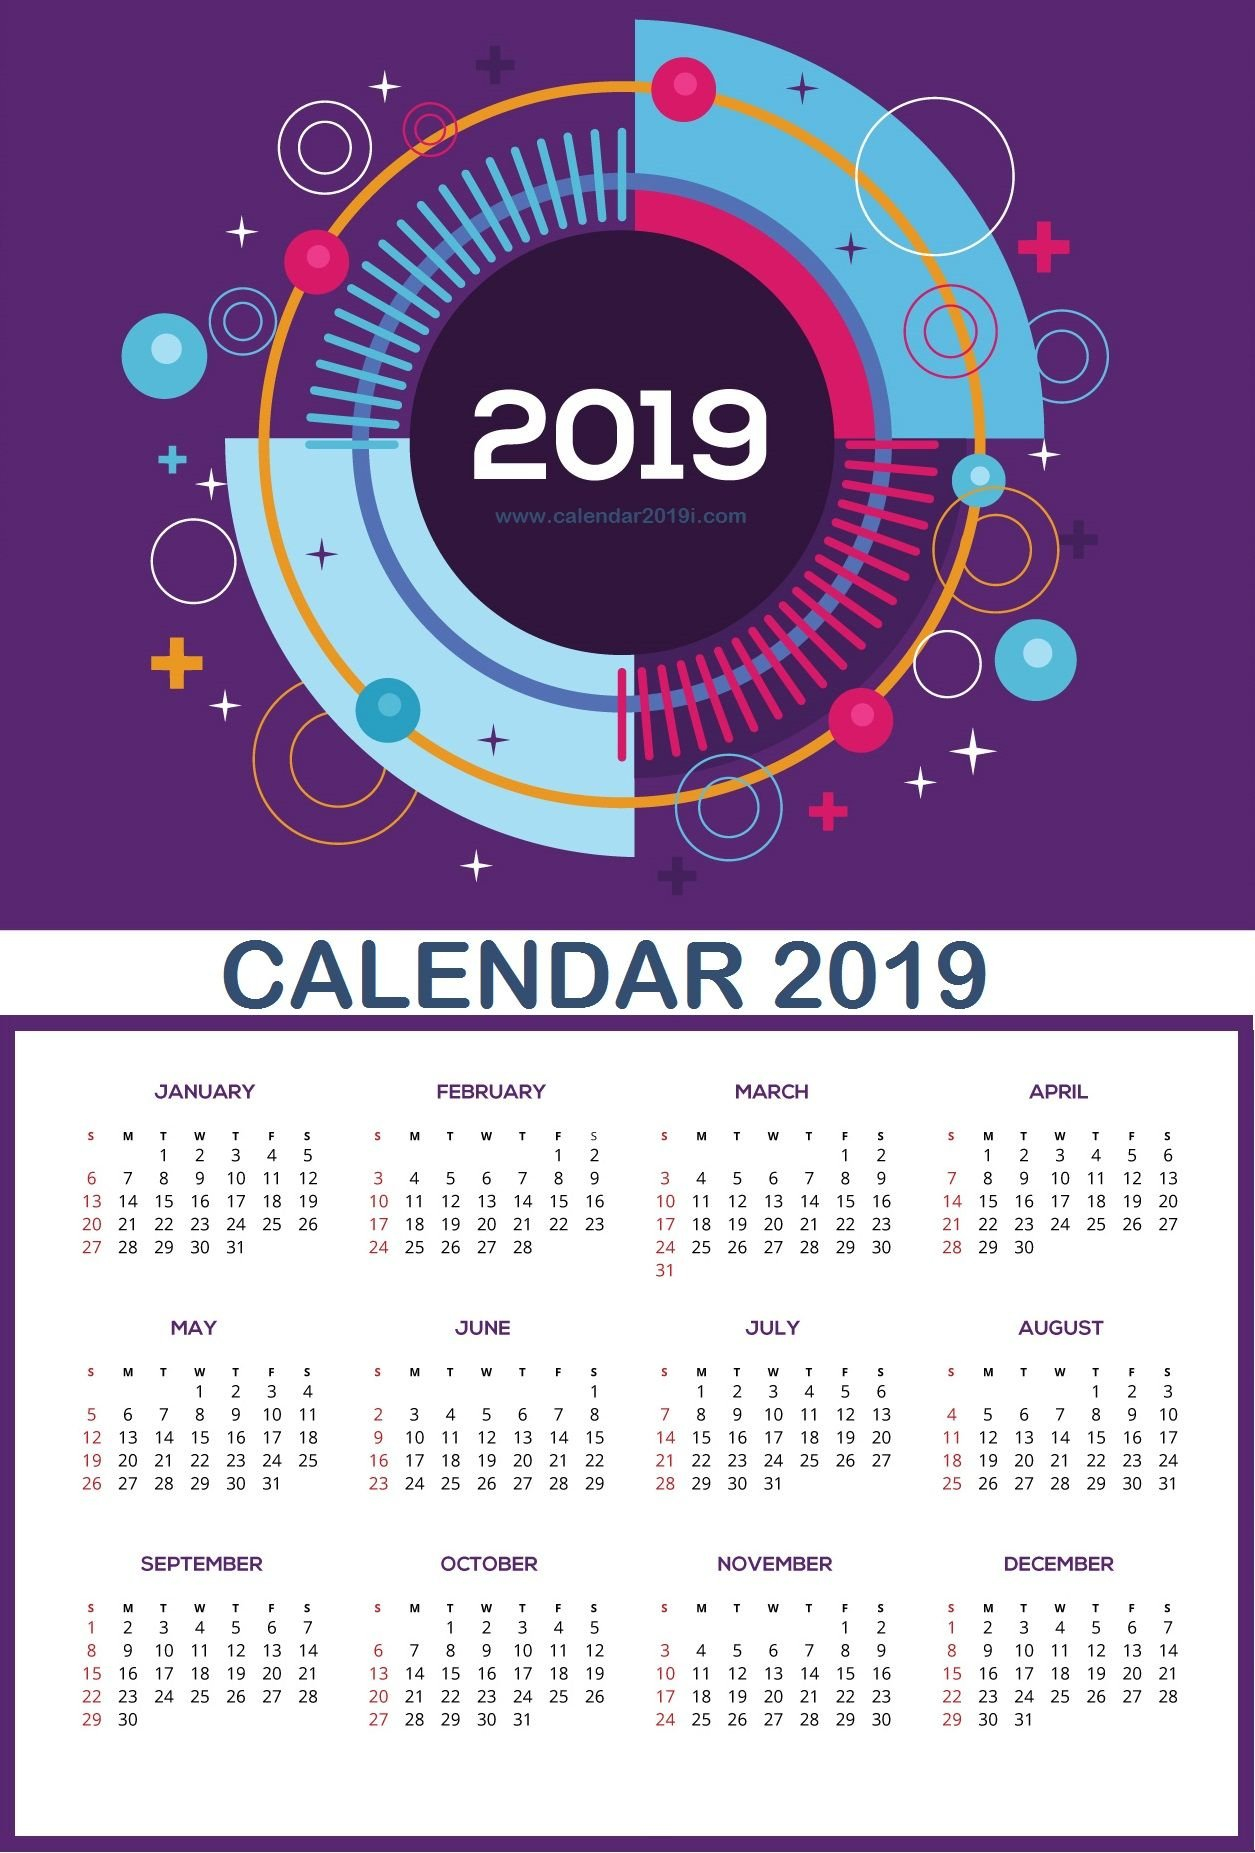 Large Wall Calendar 2019 | Planner | Wall Calendar Design, Monthly Calendar 2019 For Wall